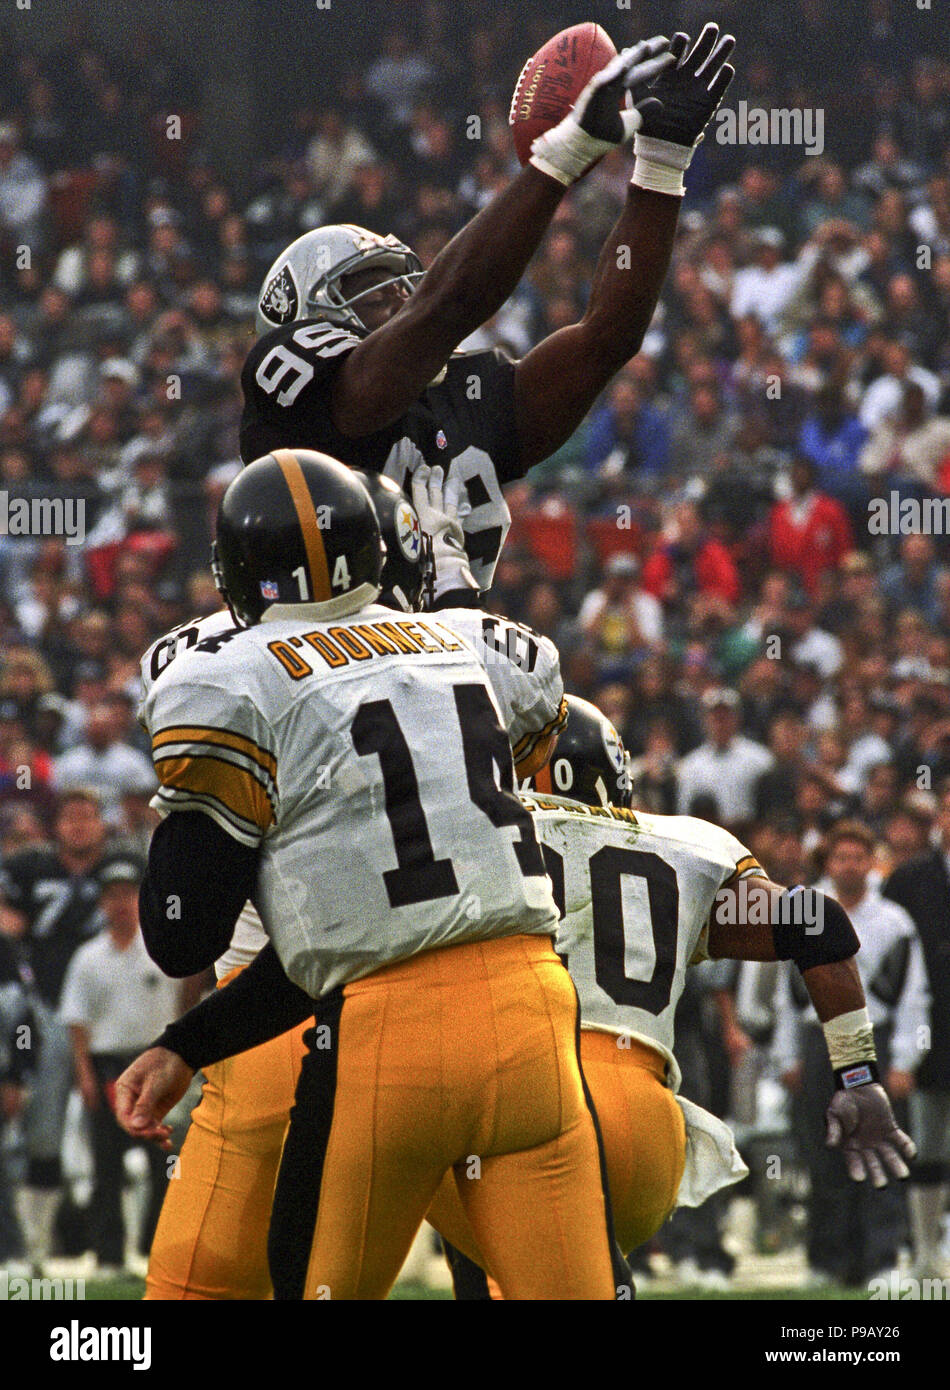 Steelers At Oakland Alameda County Coliseum Sunday December 10 1995 Beat Raiders 29 Linebacker Aundray Bruce 99 Blocks